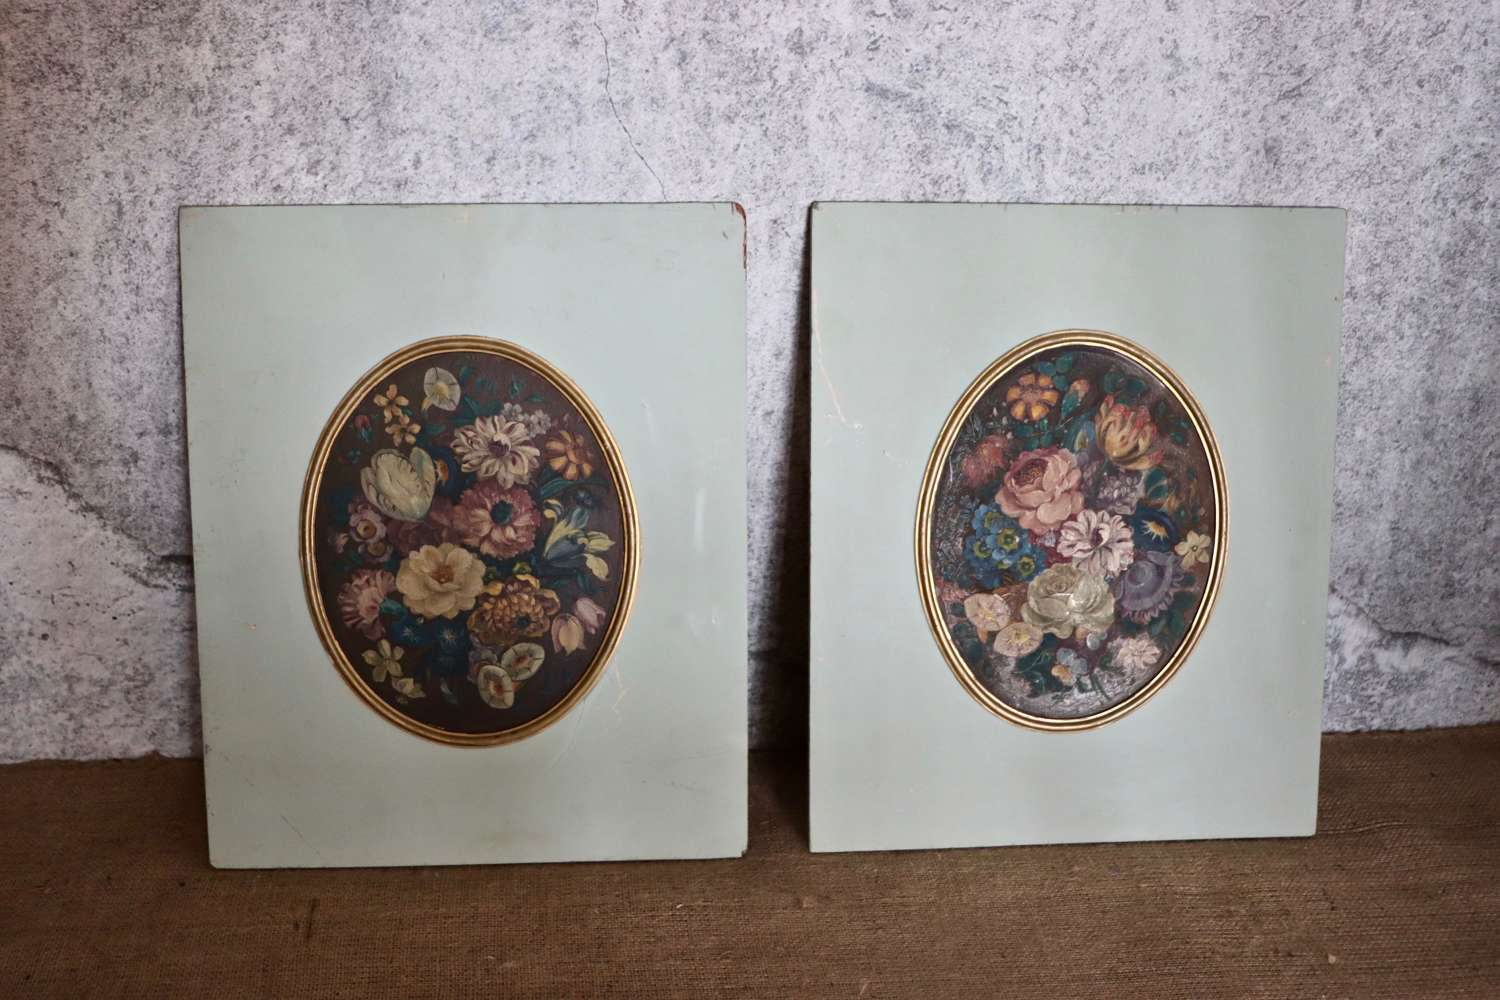 Pair of painted wooden panels with oval floral paintings